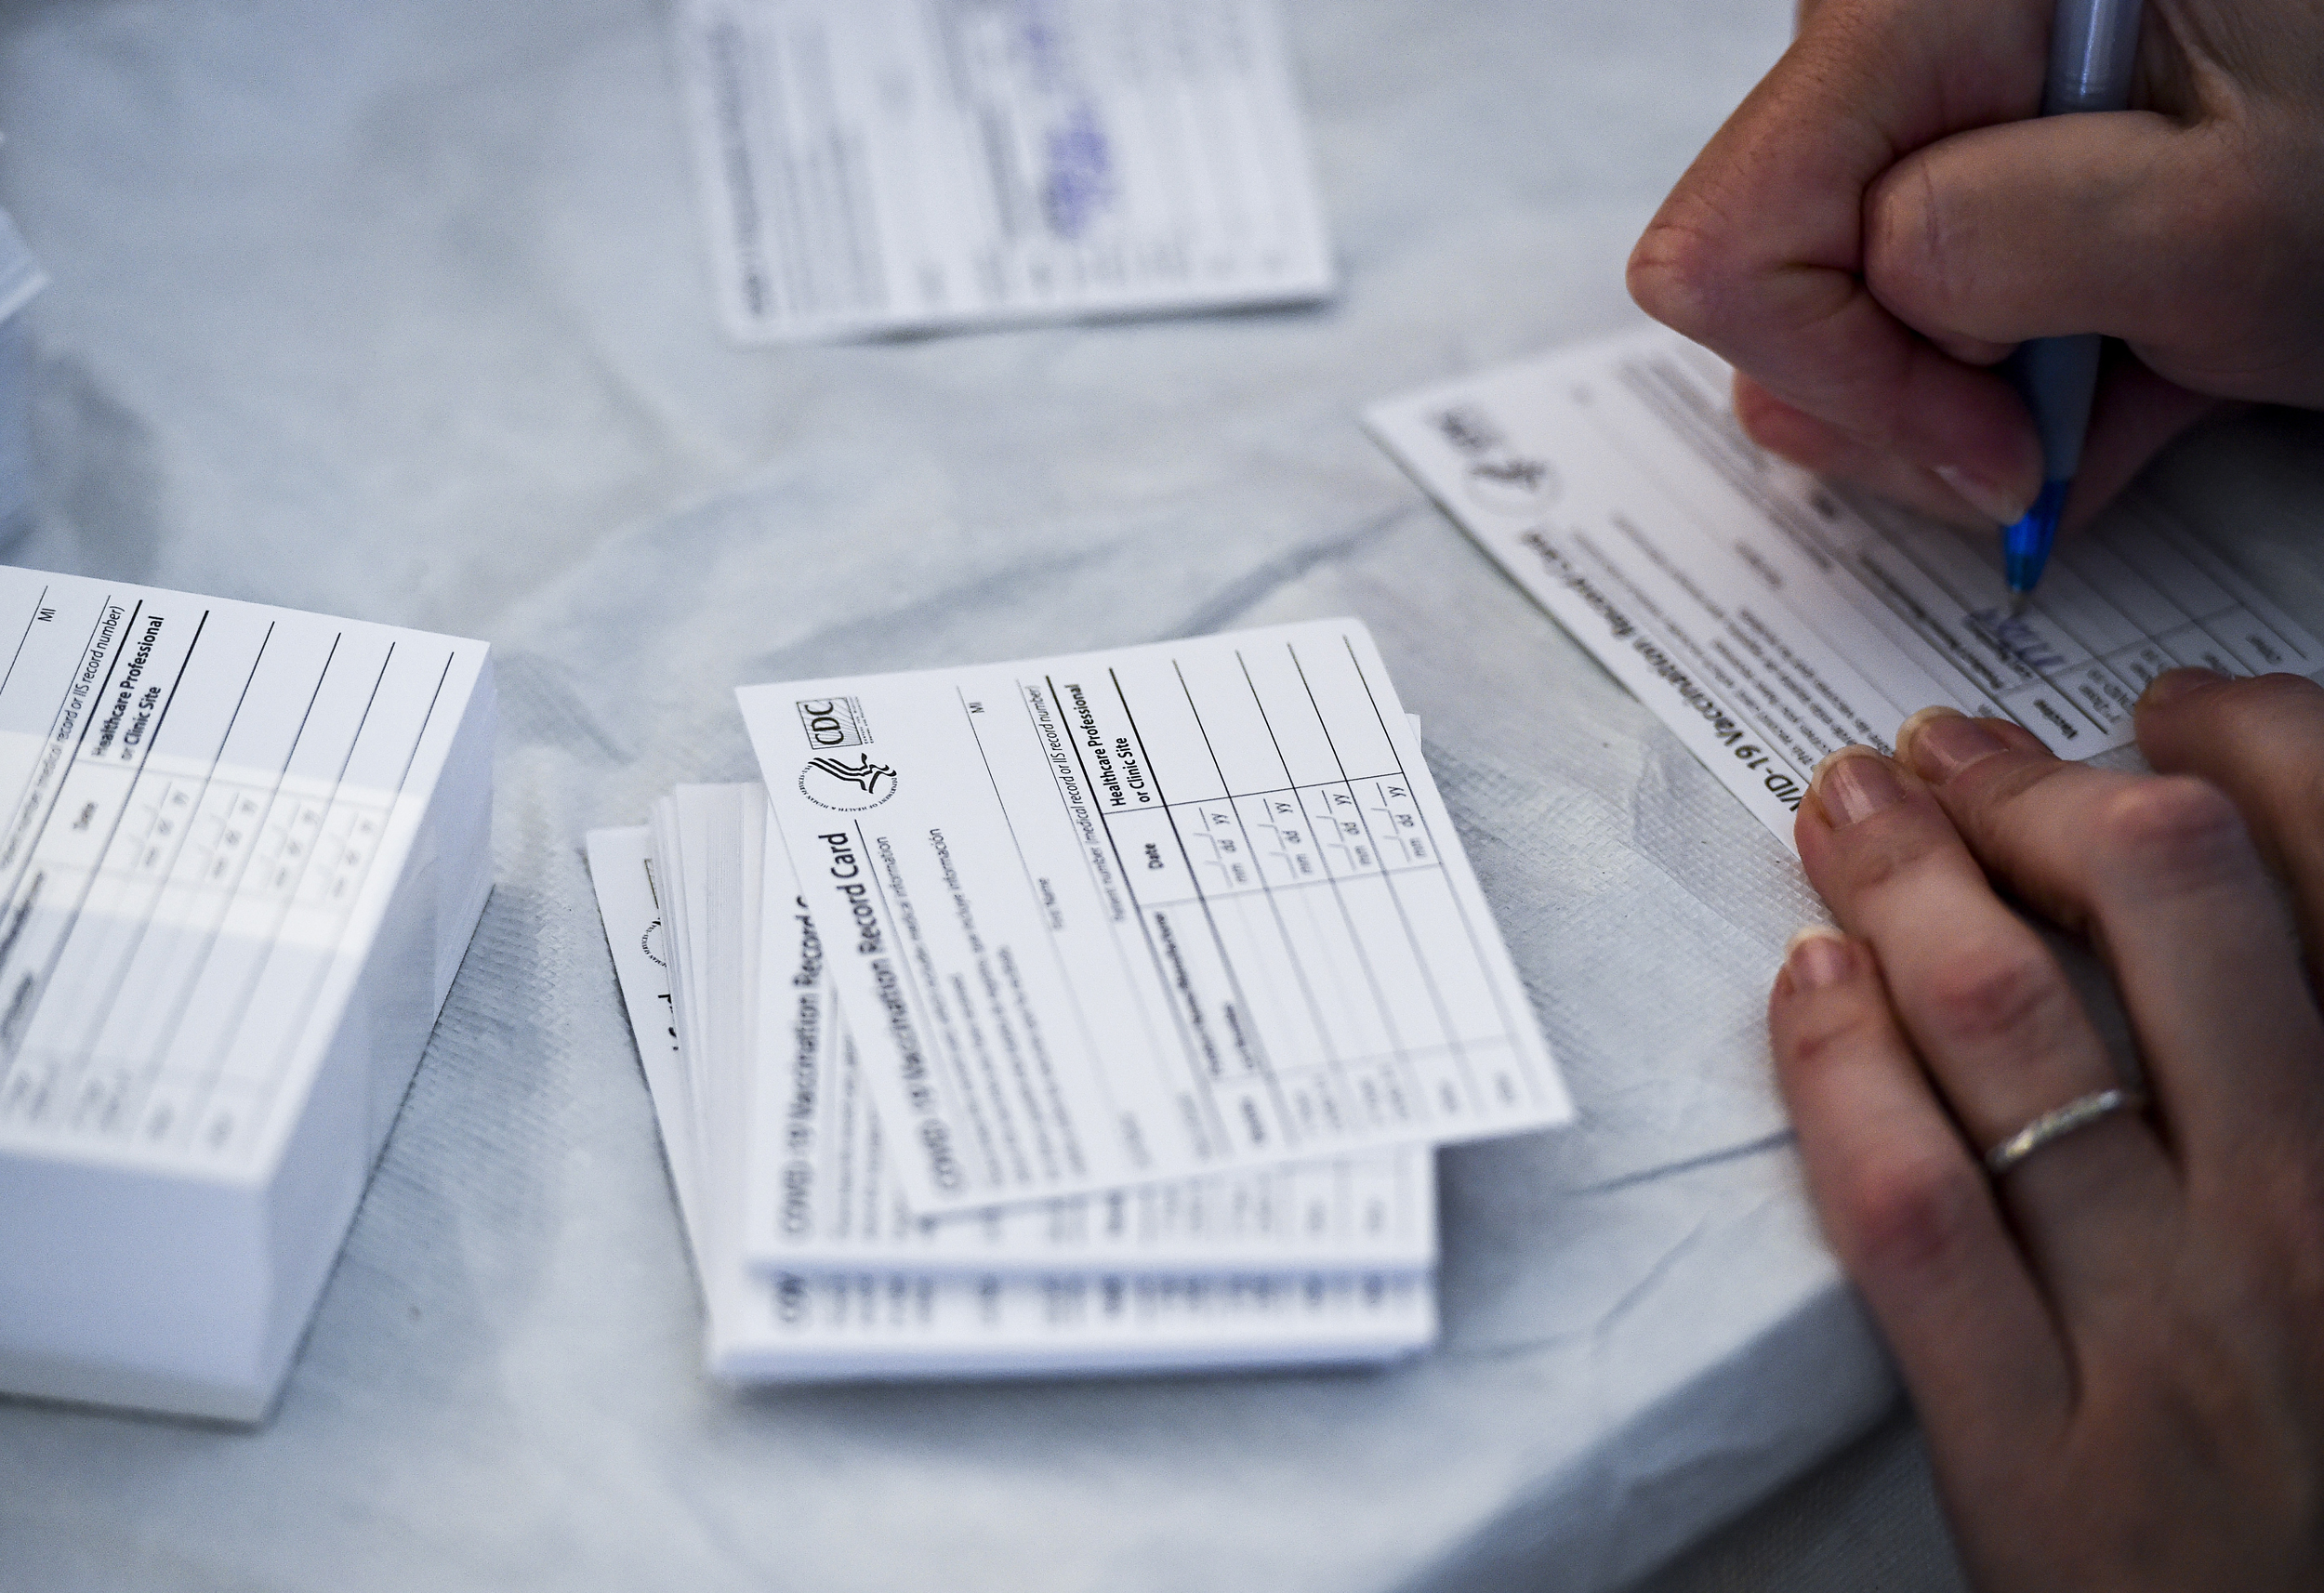 Florida couple arrested after traveling to Hawaii with fake vaccination cards, officials say